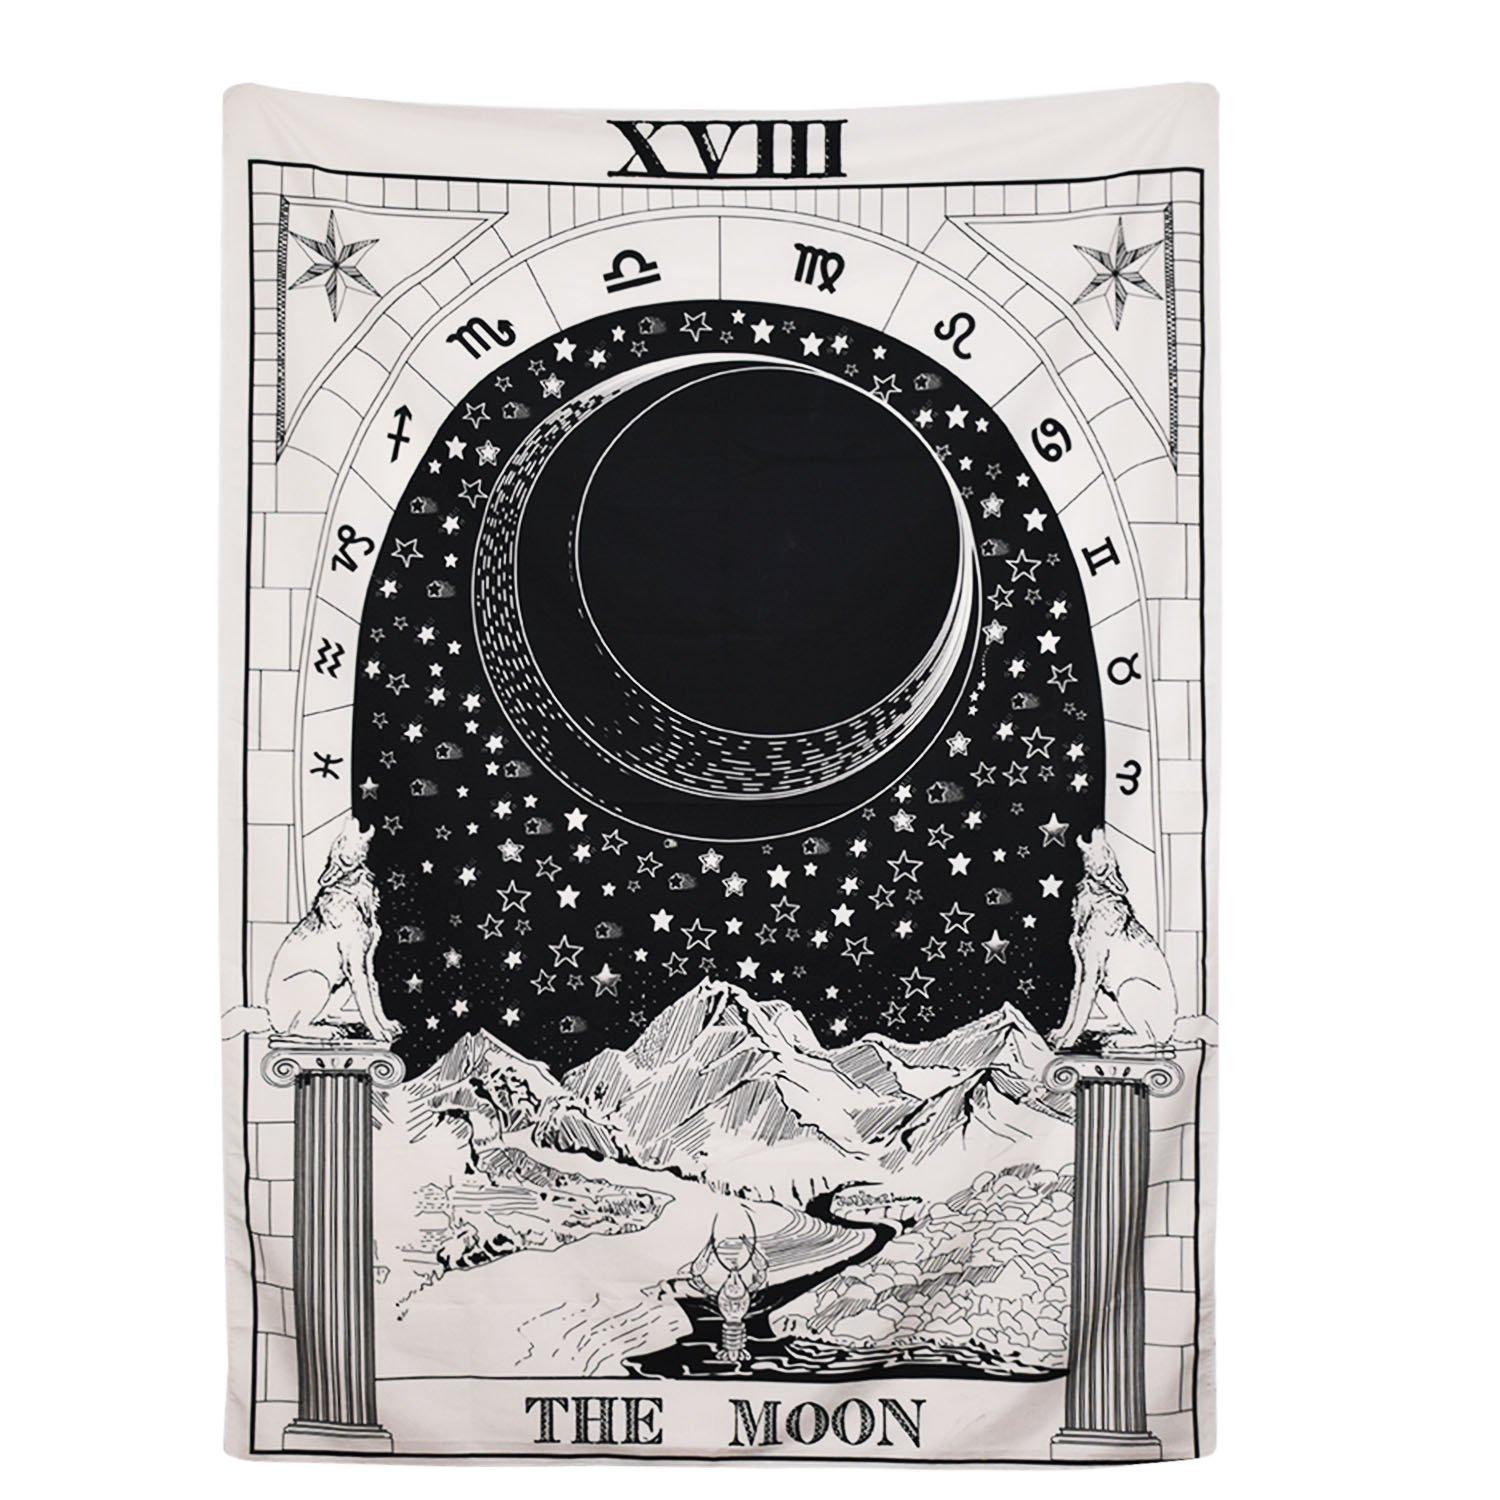 BLEUM CADE Tarot Tapestry The Moon The Star The Sun Tapestry Medieval Europe Divination Tapestry Wall Hanging Tapestries Mysterious Wall Tapestry for Home Decor (51''×59'', The Moon) by BLEUM CADE